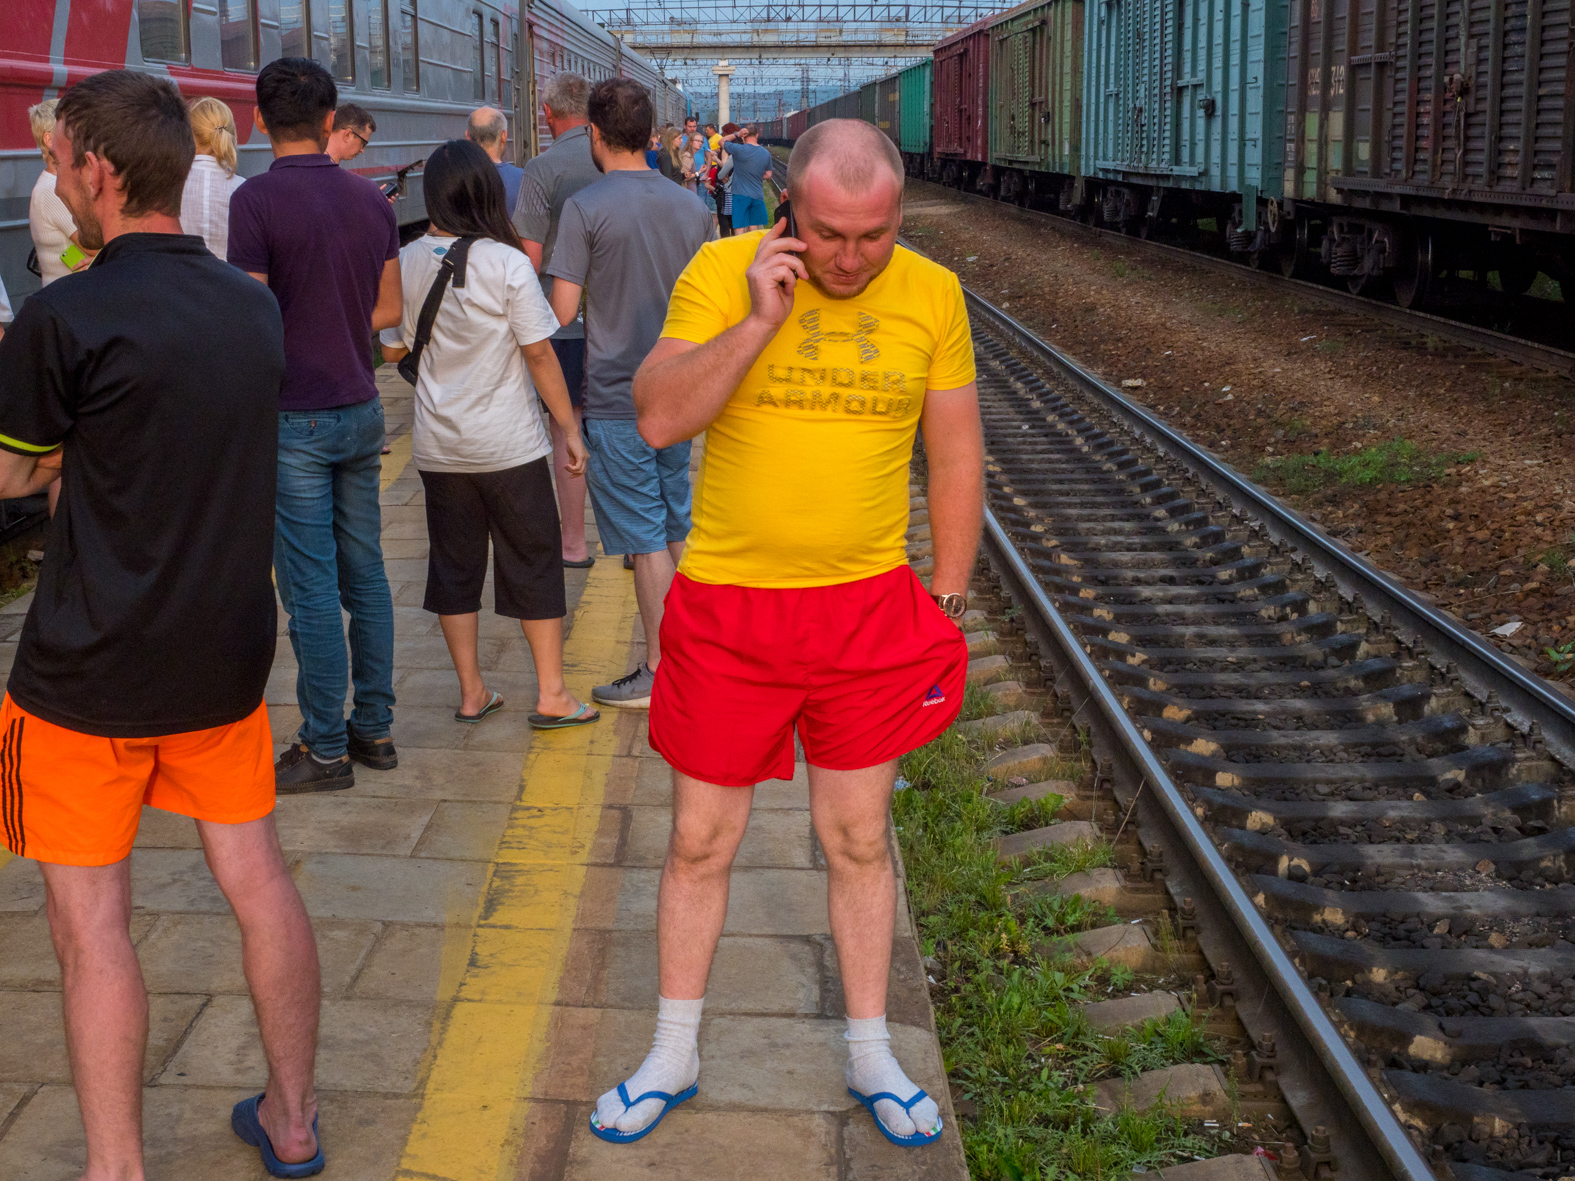 Passengers stretch their legs during a scheduled stop on the Trans-Siberian Railway from Moscow-Vladivostok. spanning a length of 9,289km, it's the longest uninterrupted single country train journey in the world. It has connected Moscow with Vladivostok since 1916, and is still being expanded. It was built between 1891 and 1916 under the supervision of Russian government ministers personally appointed by Tsar Alexander III and his son, the Tsarevich Nicholas (later Tsar Nicholas II).